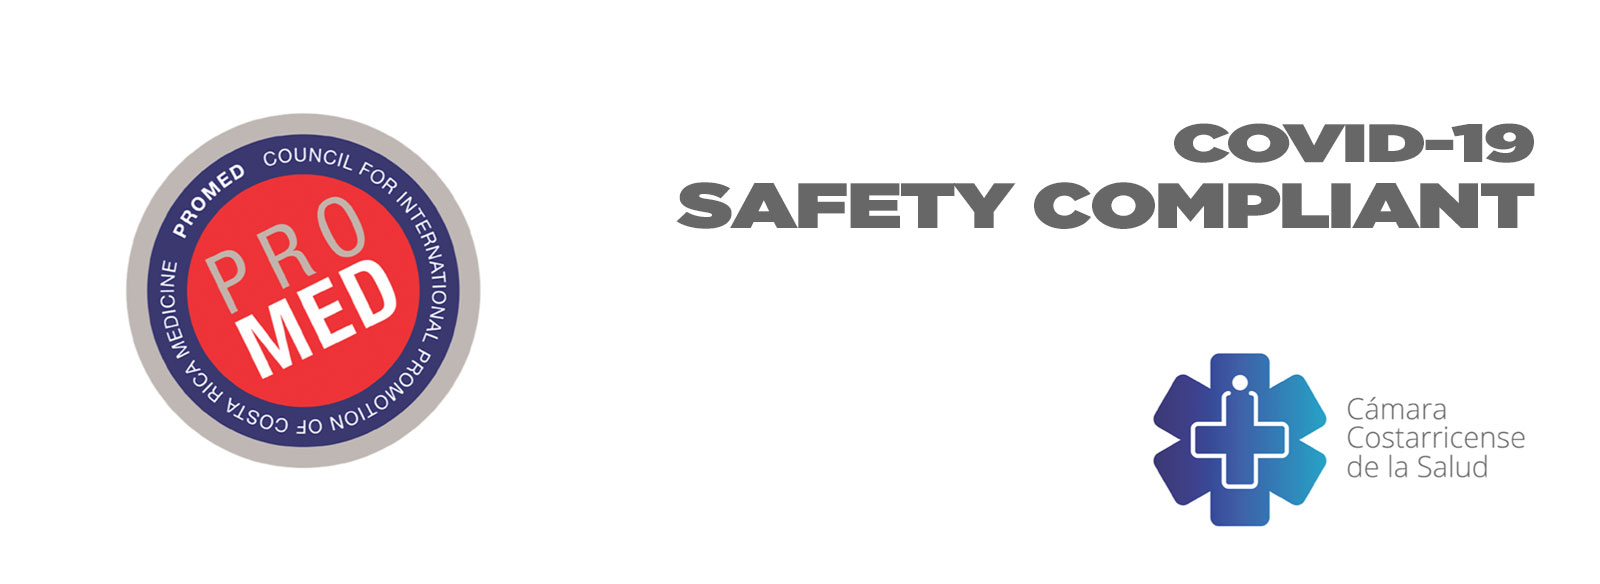 Sello Covid-19 - Safety Compliant